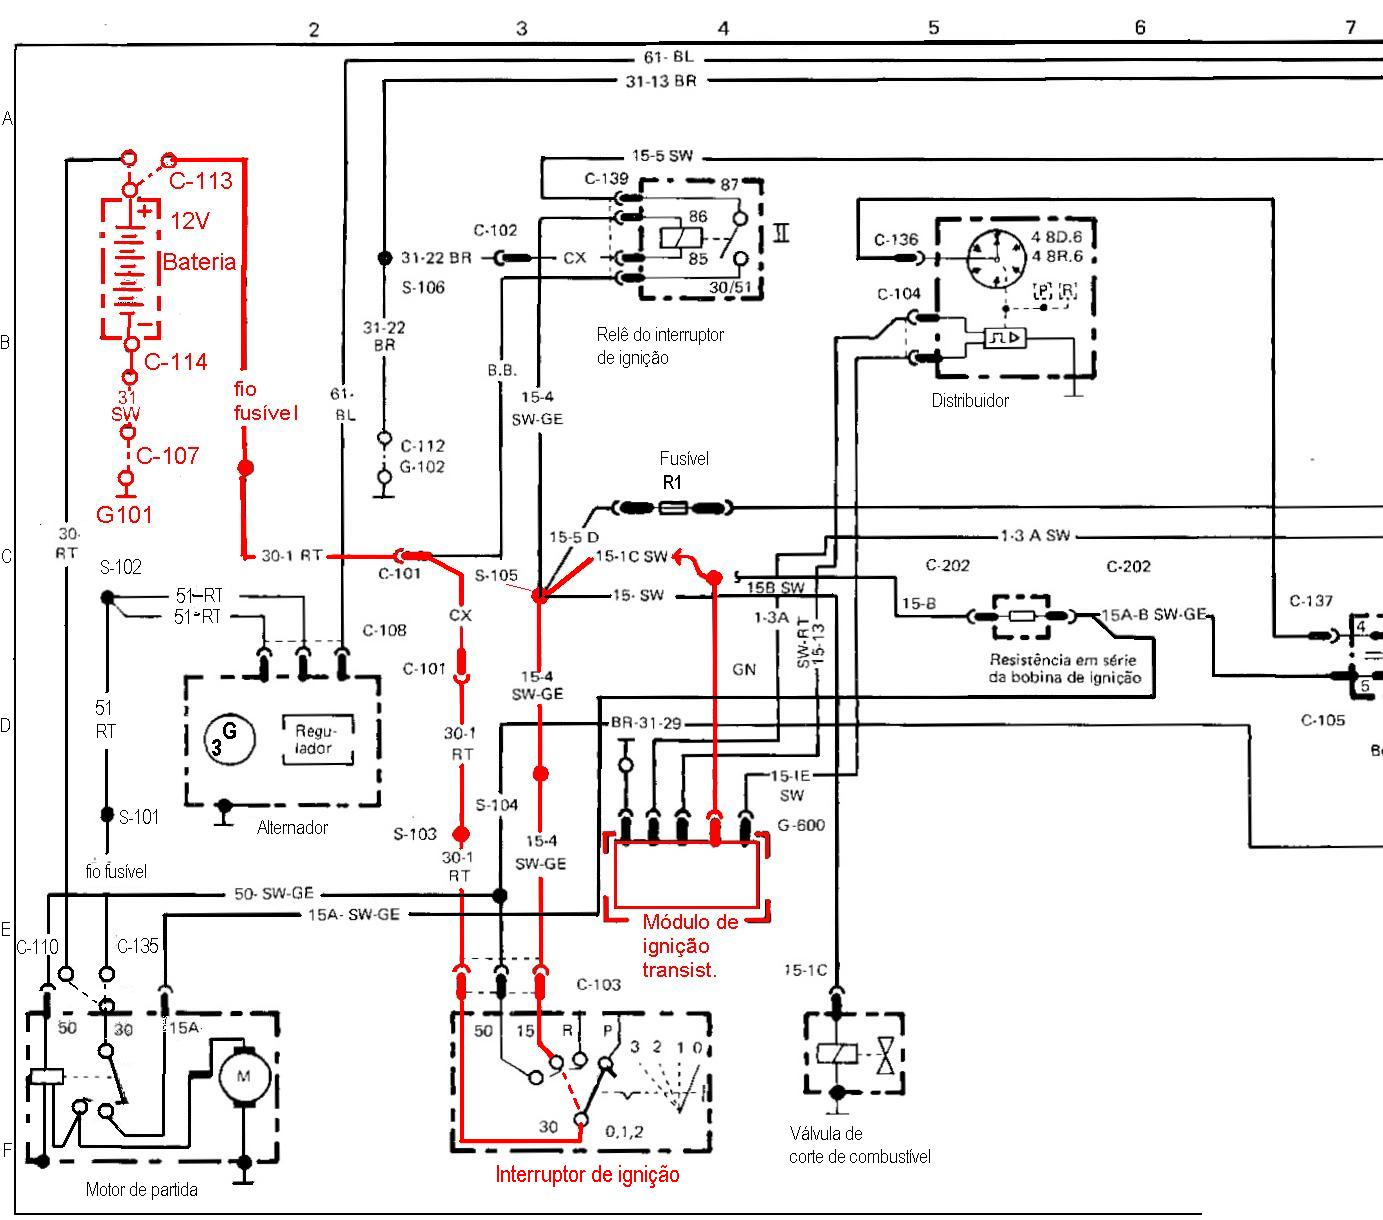 2013 ford fiesta fuse box diagram html